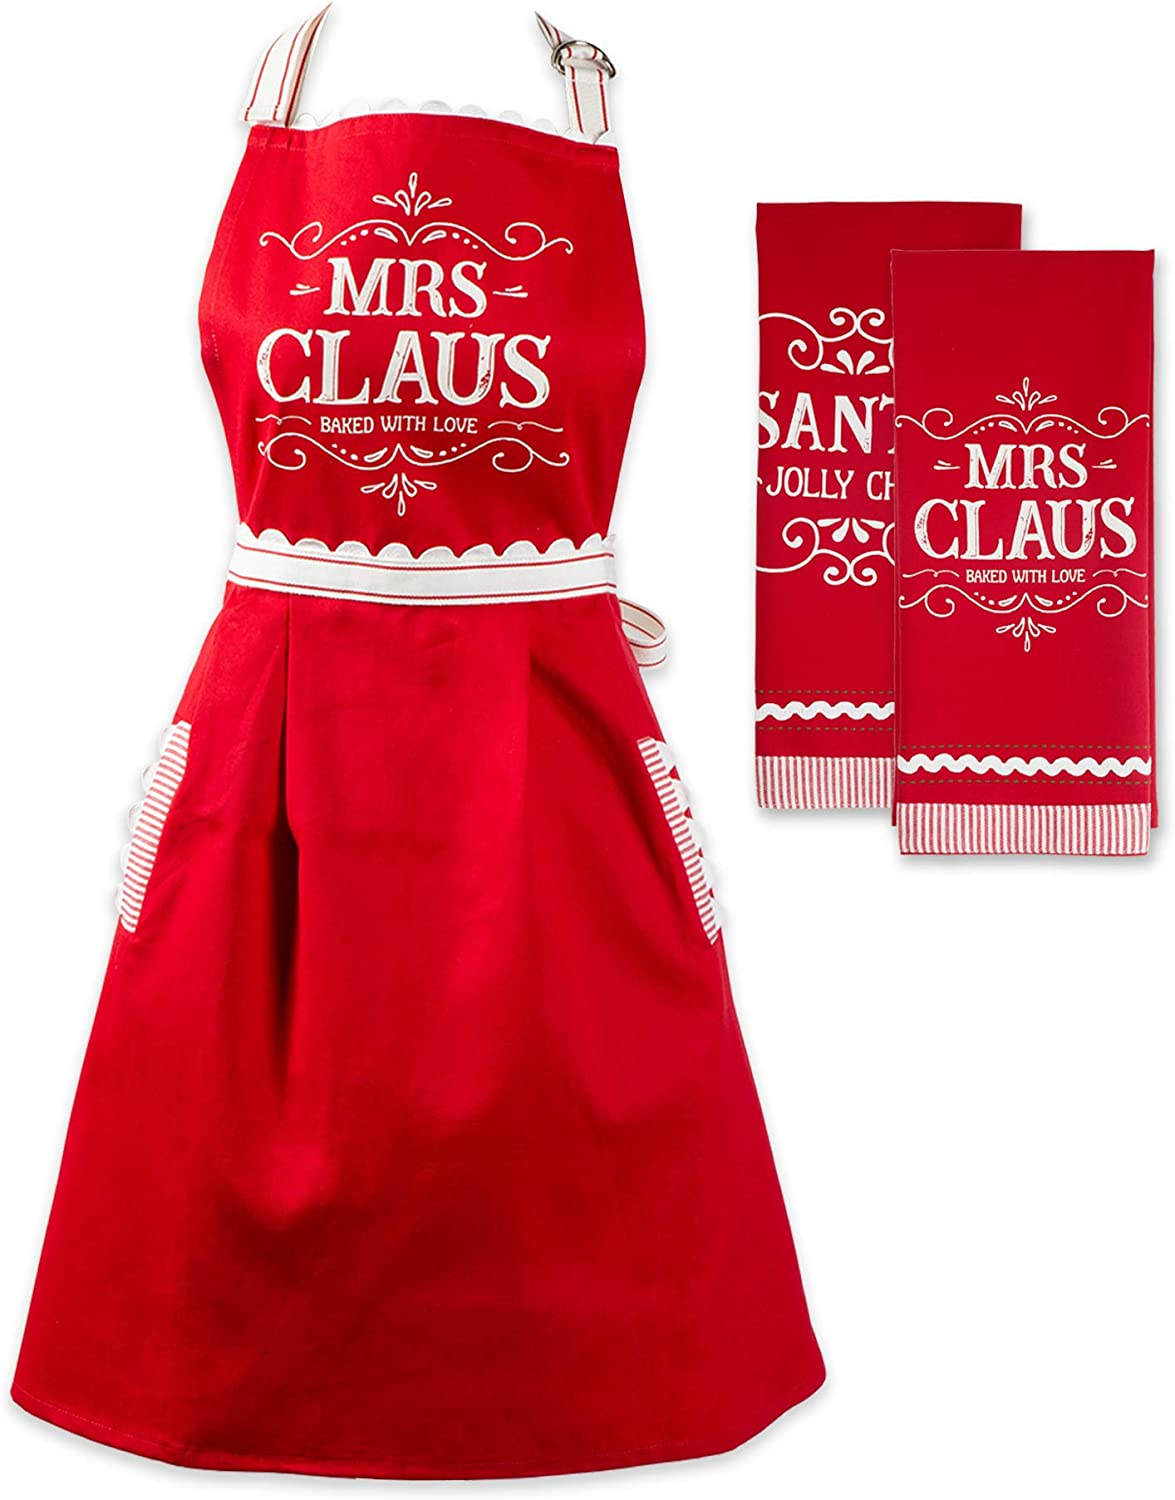 DII North Pole Holiday Chef Collection Claus 3 Piece Kitchen Set Mrs